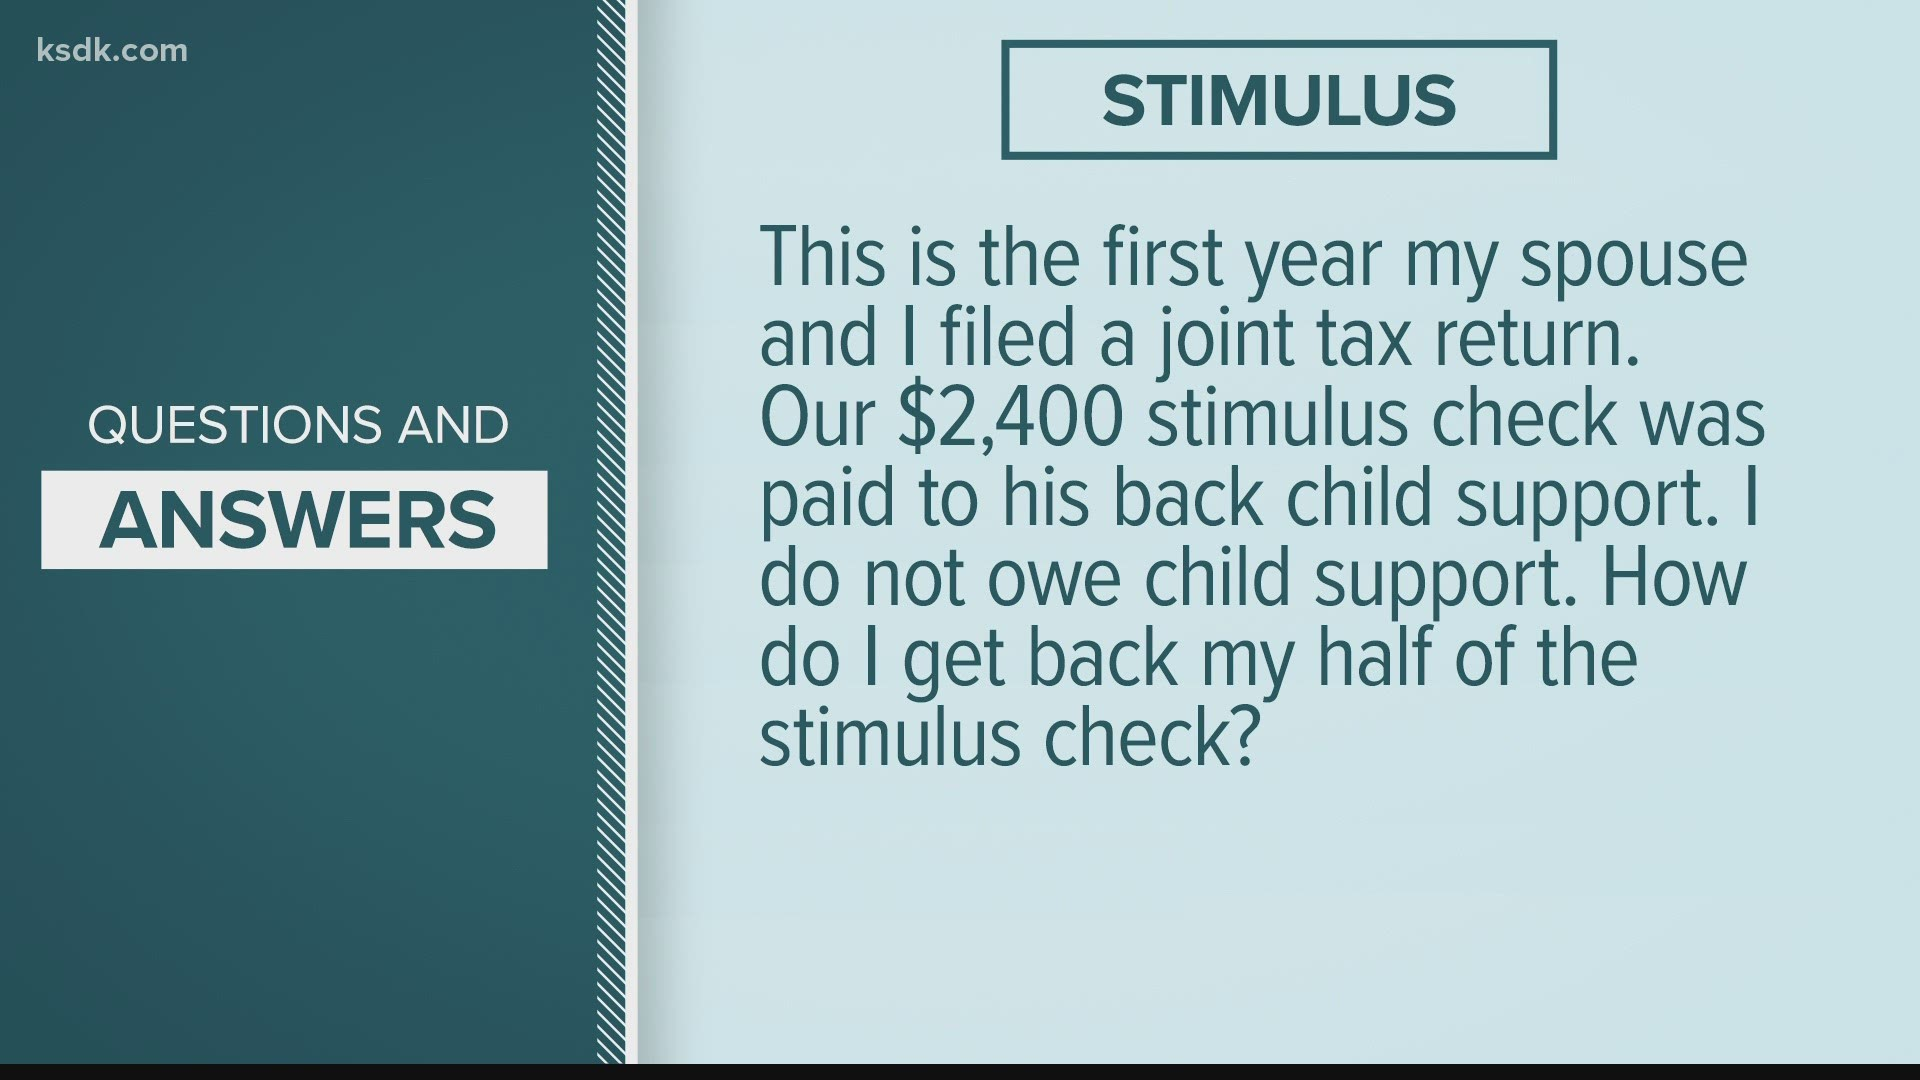 Stimulus Check 2020 Delays Issues Tax Return Amount Ksdk Com Injured, spouse i'm gonna be filing injured spouse this year. your stimulus questions answered